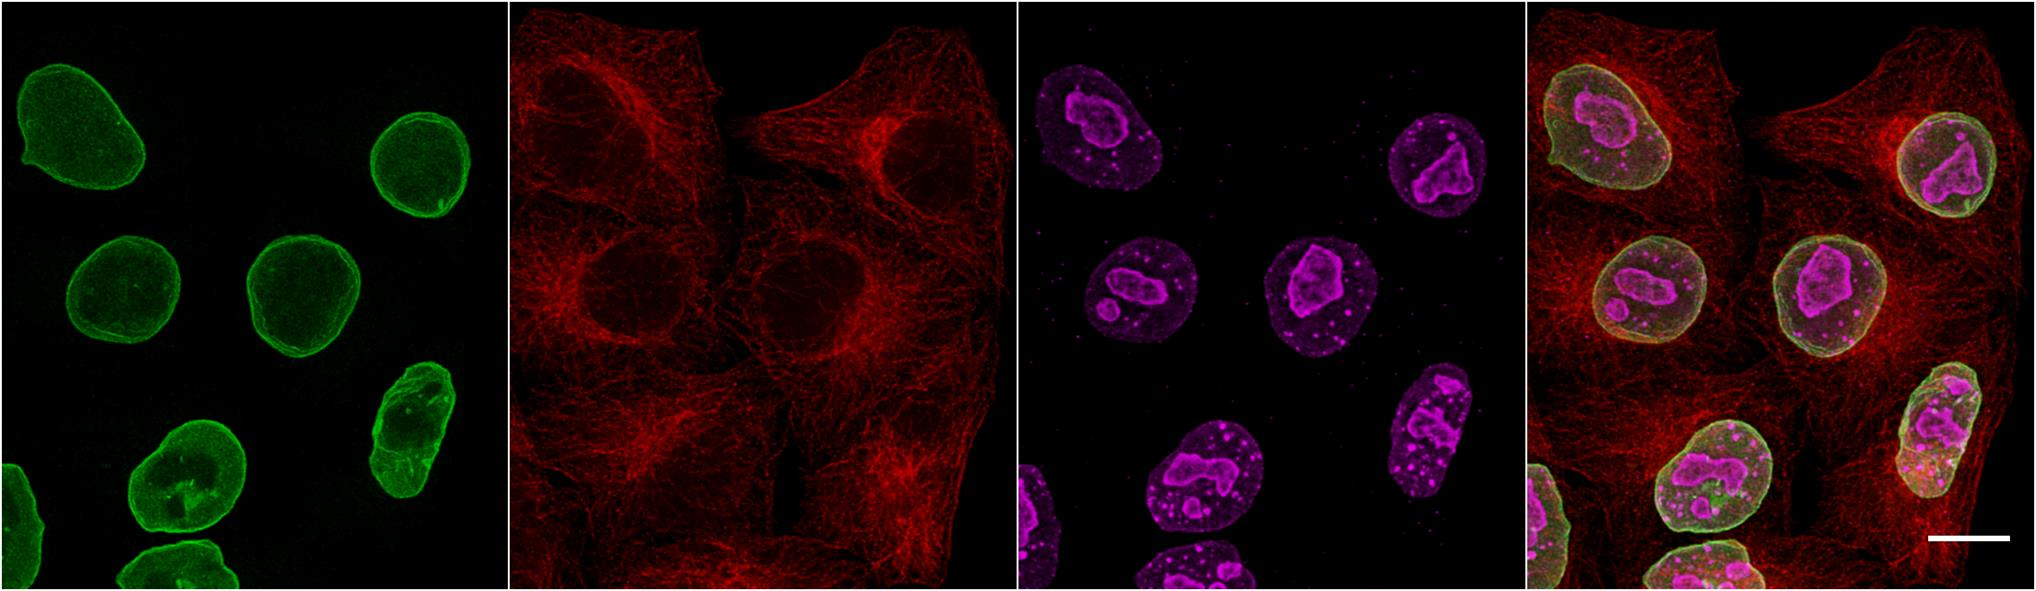 Multiplexed immunostaining of HeLa cells with two alpaca anti-mouse Nano-Secondaries and one conventional secondary antibody. Green: mouse IgG3 anti-Lamin + alpaca anti-mouse IgG3 VHH Alexa Fluor® 488. Red: mouse IgG1 anti-Tubulin + alpaca anti-mouse gG1 VHH Alexa Fluor® 568. Magenta: rabbit anti-Ki67 + conventional polyclonal secondary anti-rabbit-AF647. Scale bar, 10 μm. Images were recorded at the Core Facility Bioimaging at the Biomedical Center, LMU Munich.